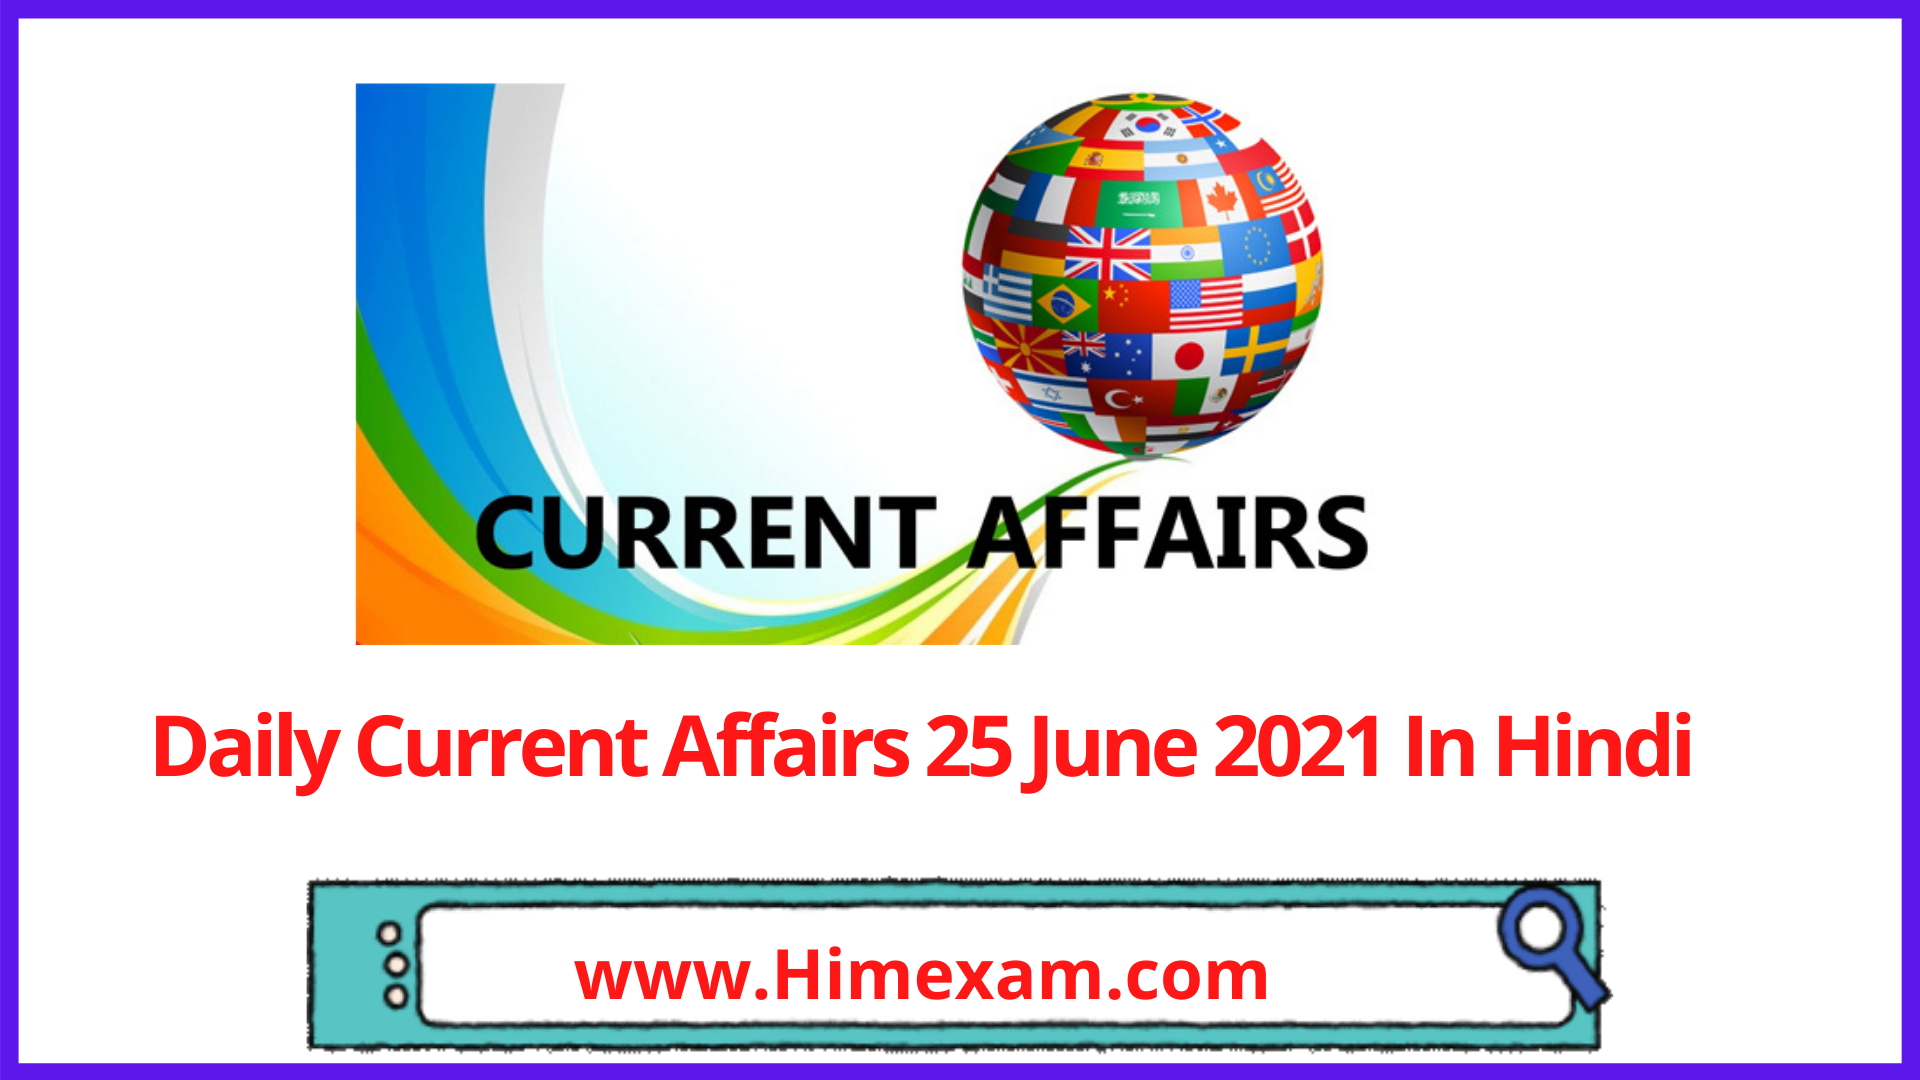 Daily Current Affairs 25 June 2021 In Hindi